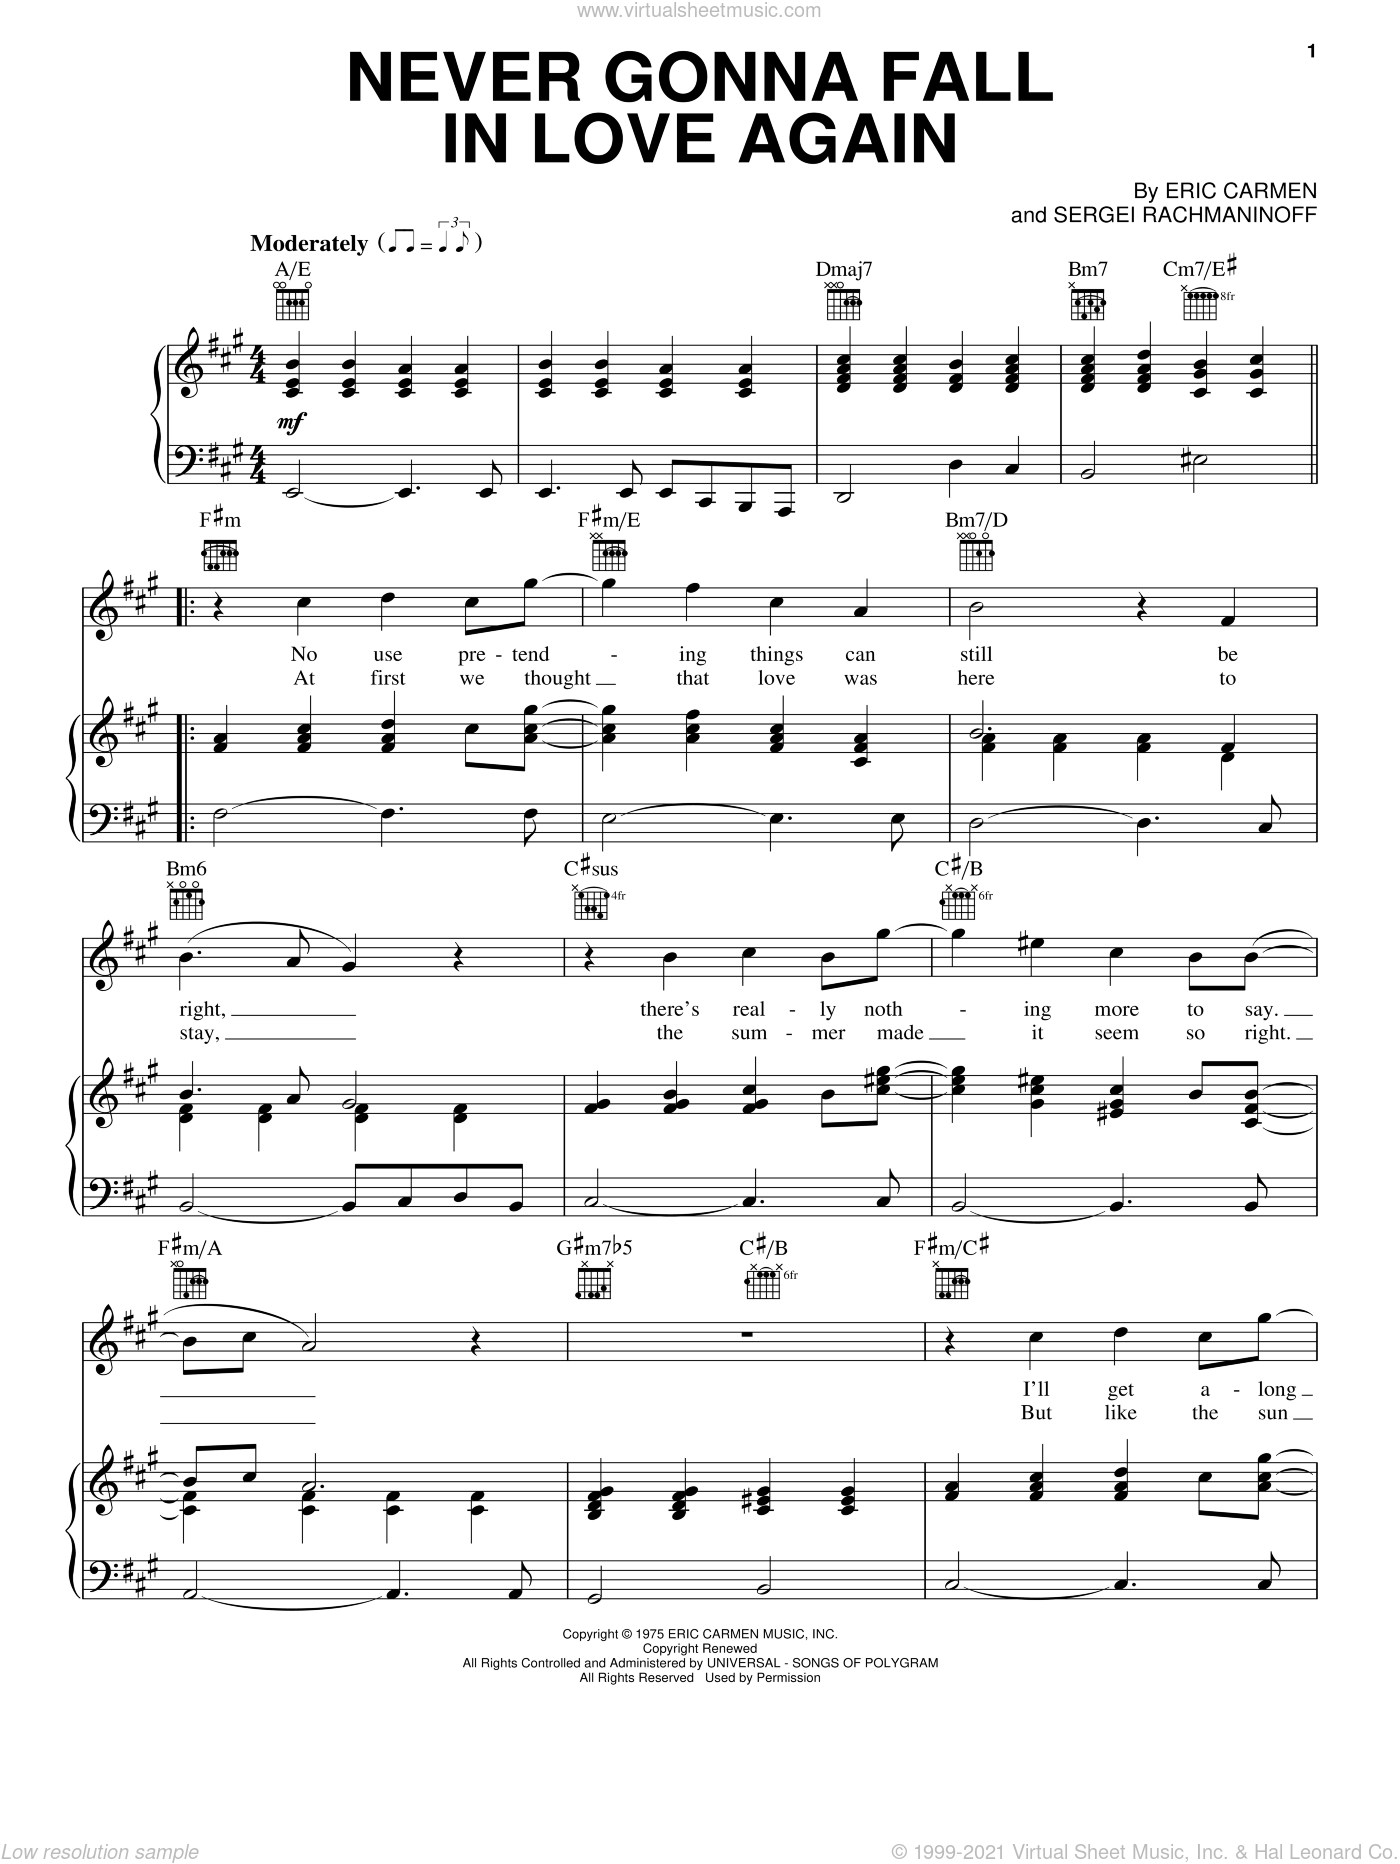 Never Gonna Fall In Love Again sheet music for voice, piano or guitar by Eric Carmen and Serjeij Rachmaninoff, intermediate skill level